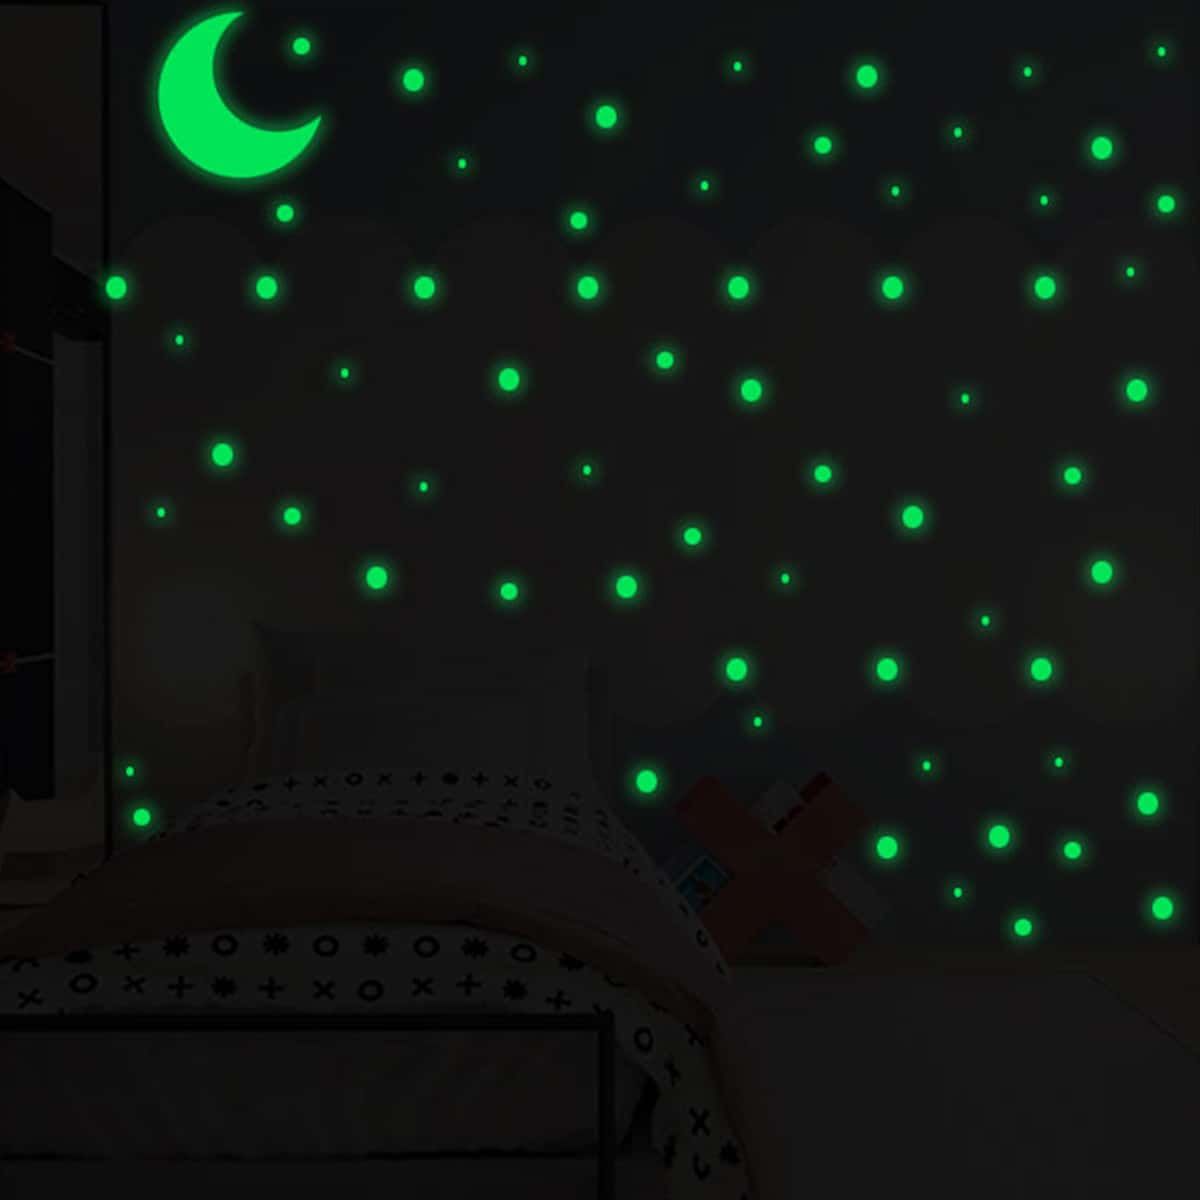 SHEIN / Moon & Dot Pattern Luminous Wall Sticker